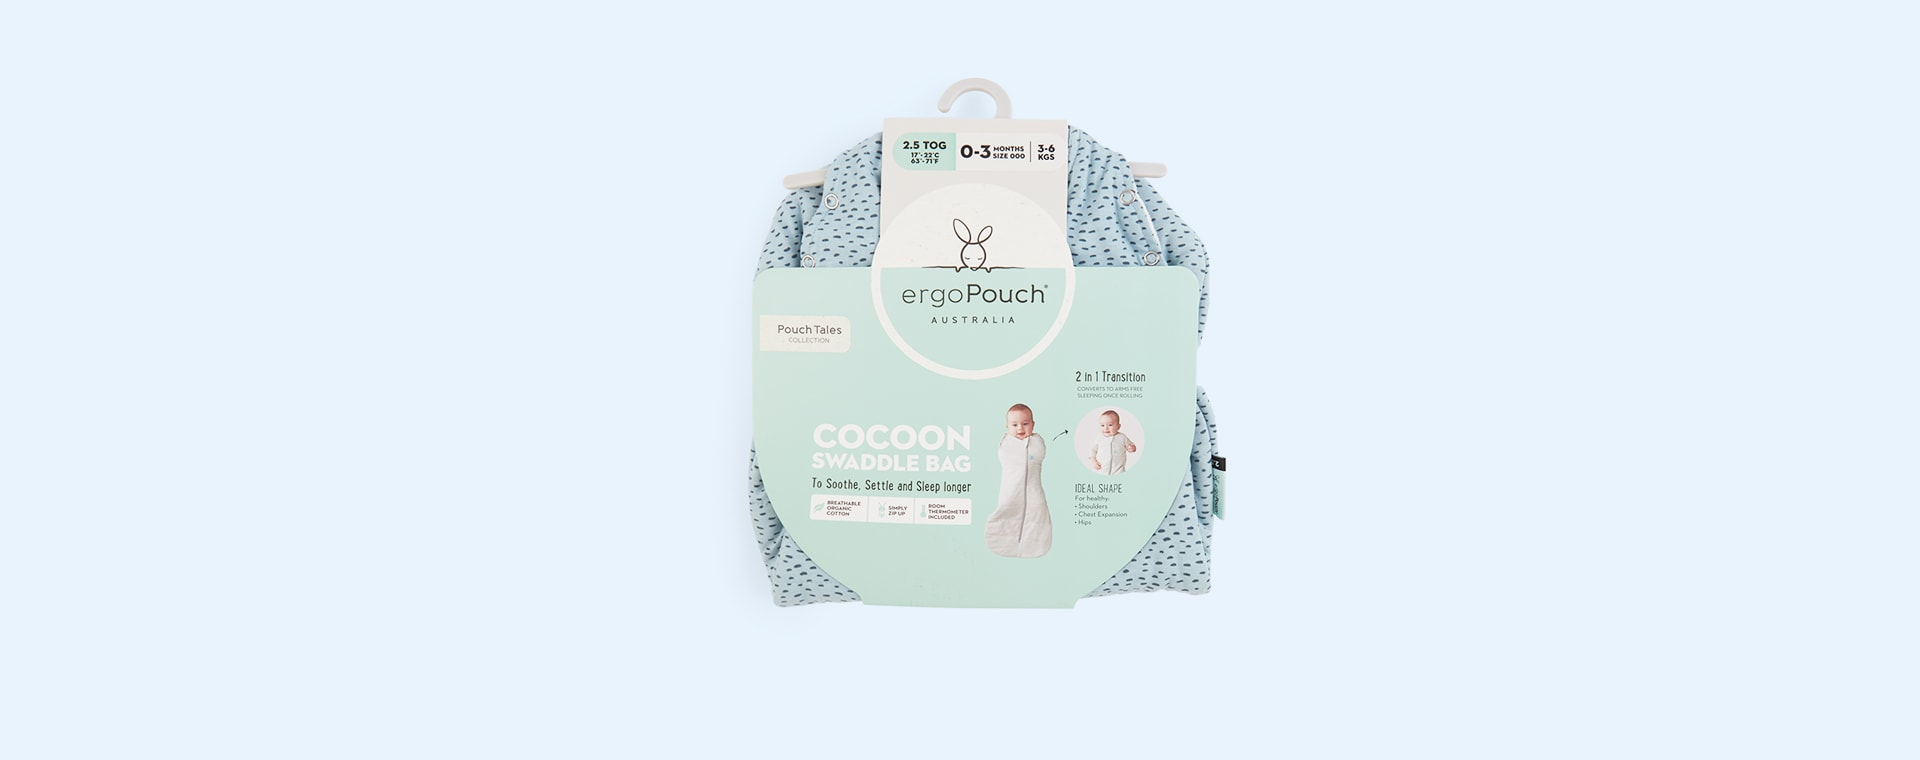 Pebble Ergopouch ergoCocoon Swaddle Bag 2.5 TOG